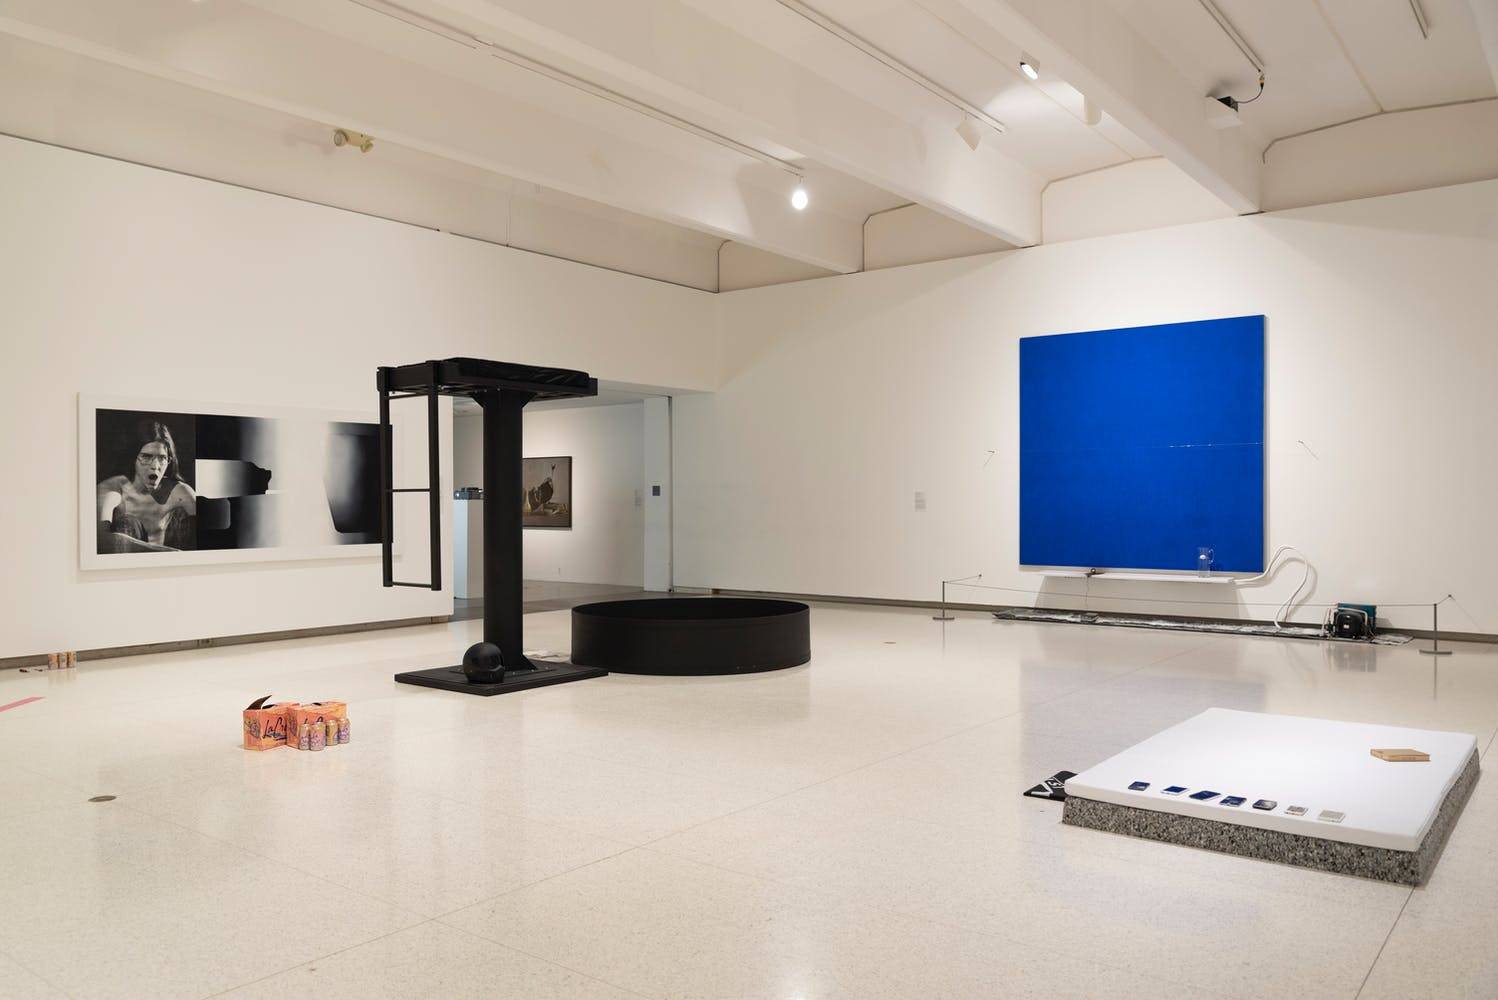 Gallery view with various sculpture objects and paintings